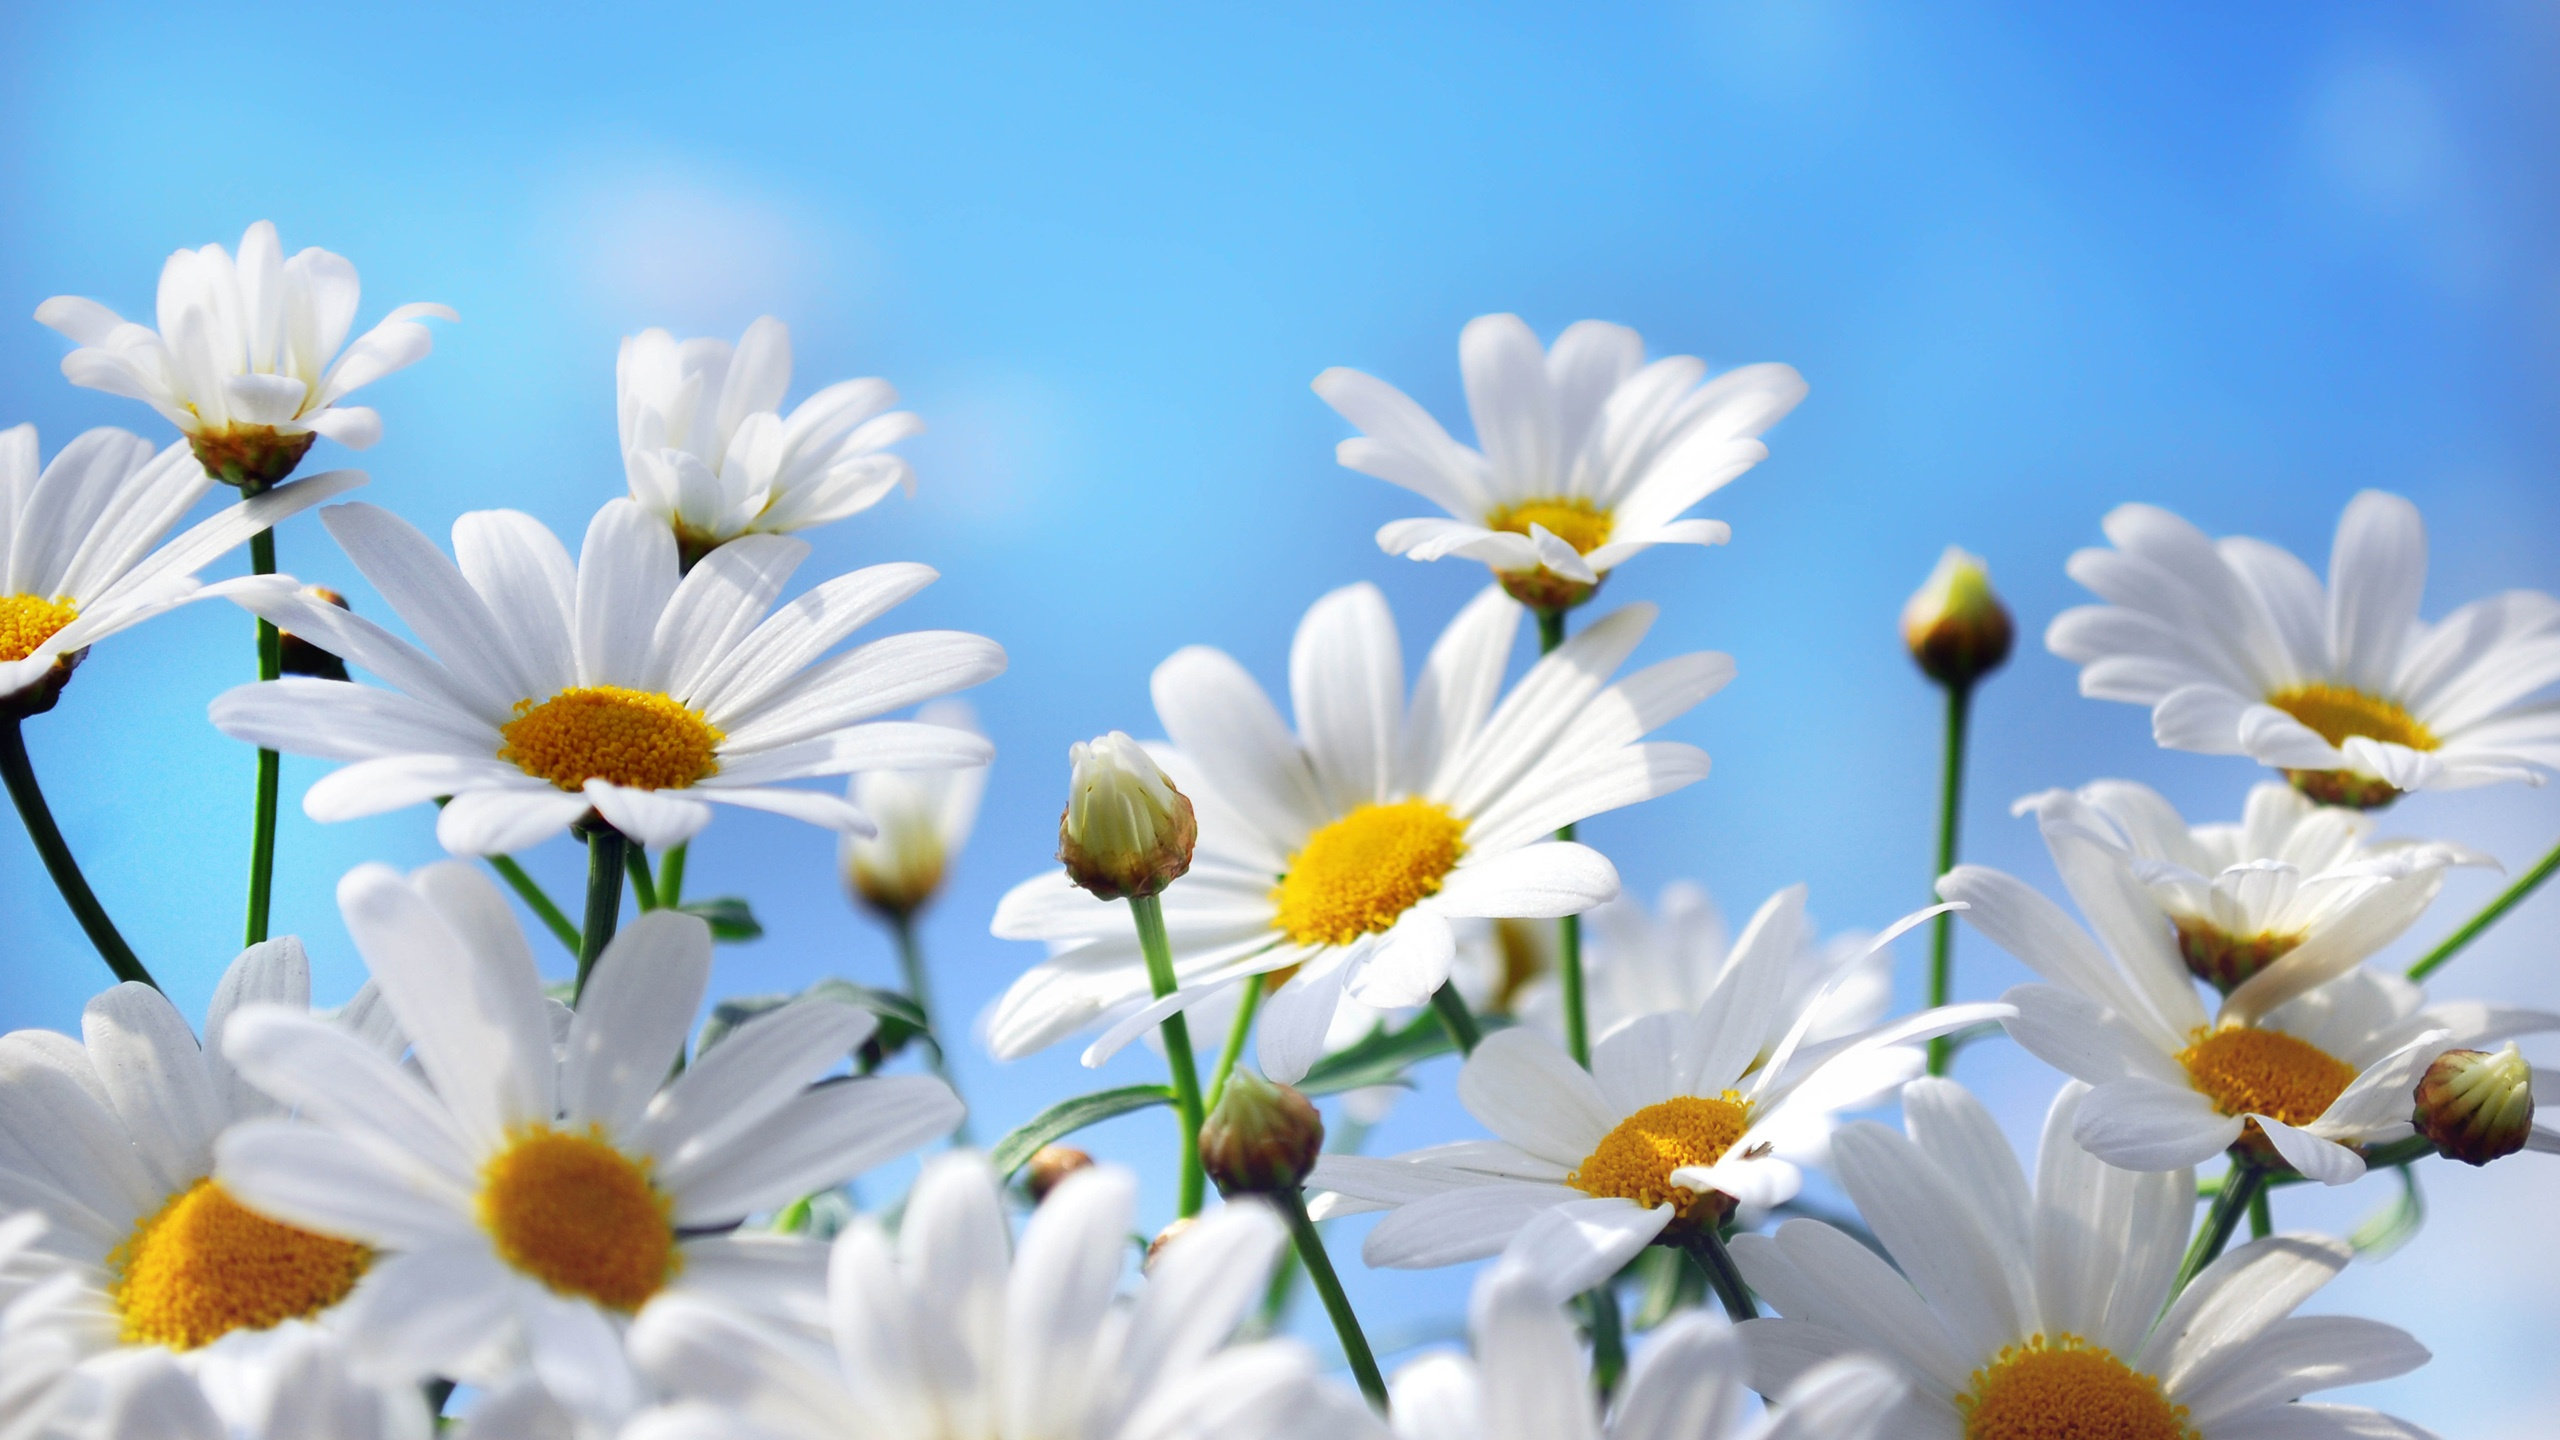 Nature-flowers-photography-daisies-petals-blue-sky_2560x1440